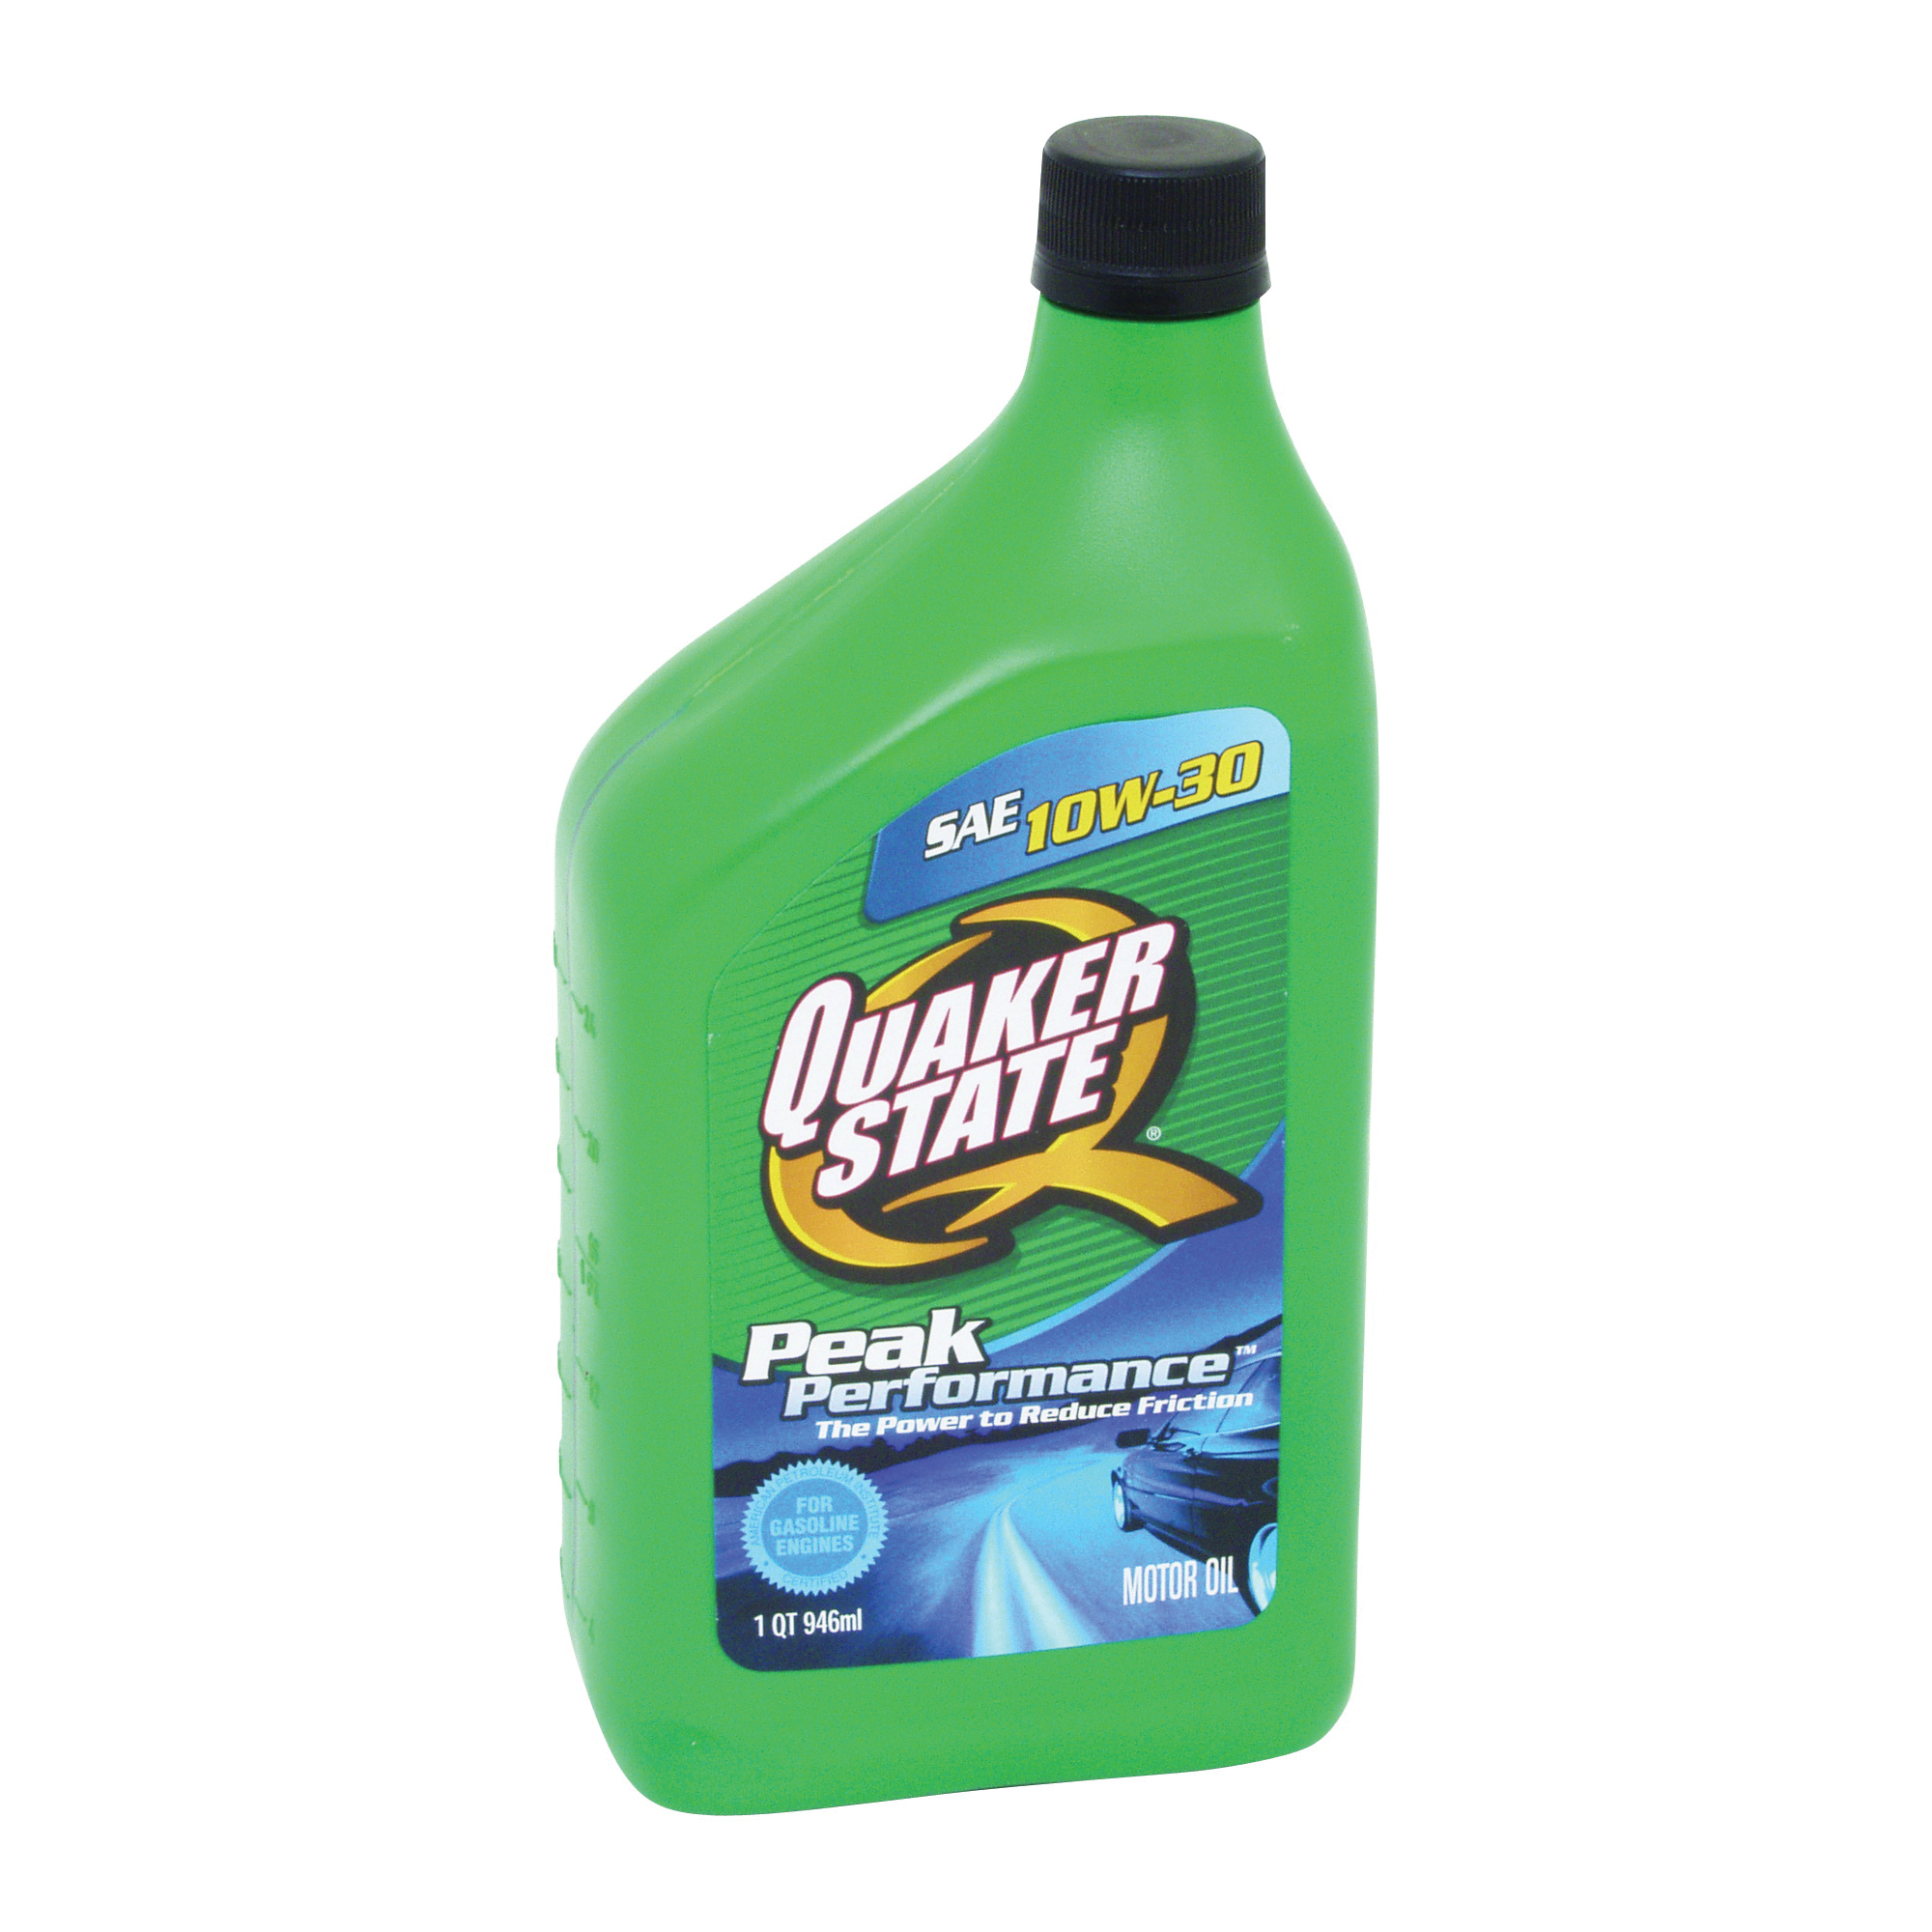 Picture of Quaker State 550035170 Motor Oil, 10W-30, 1 qt Package